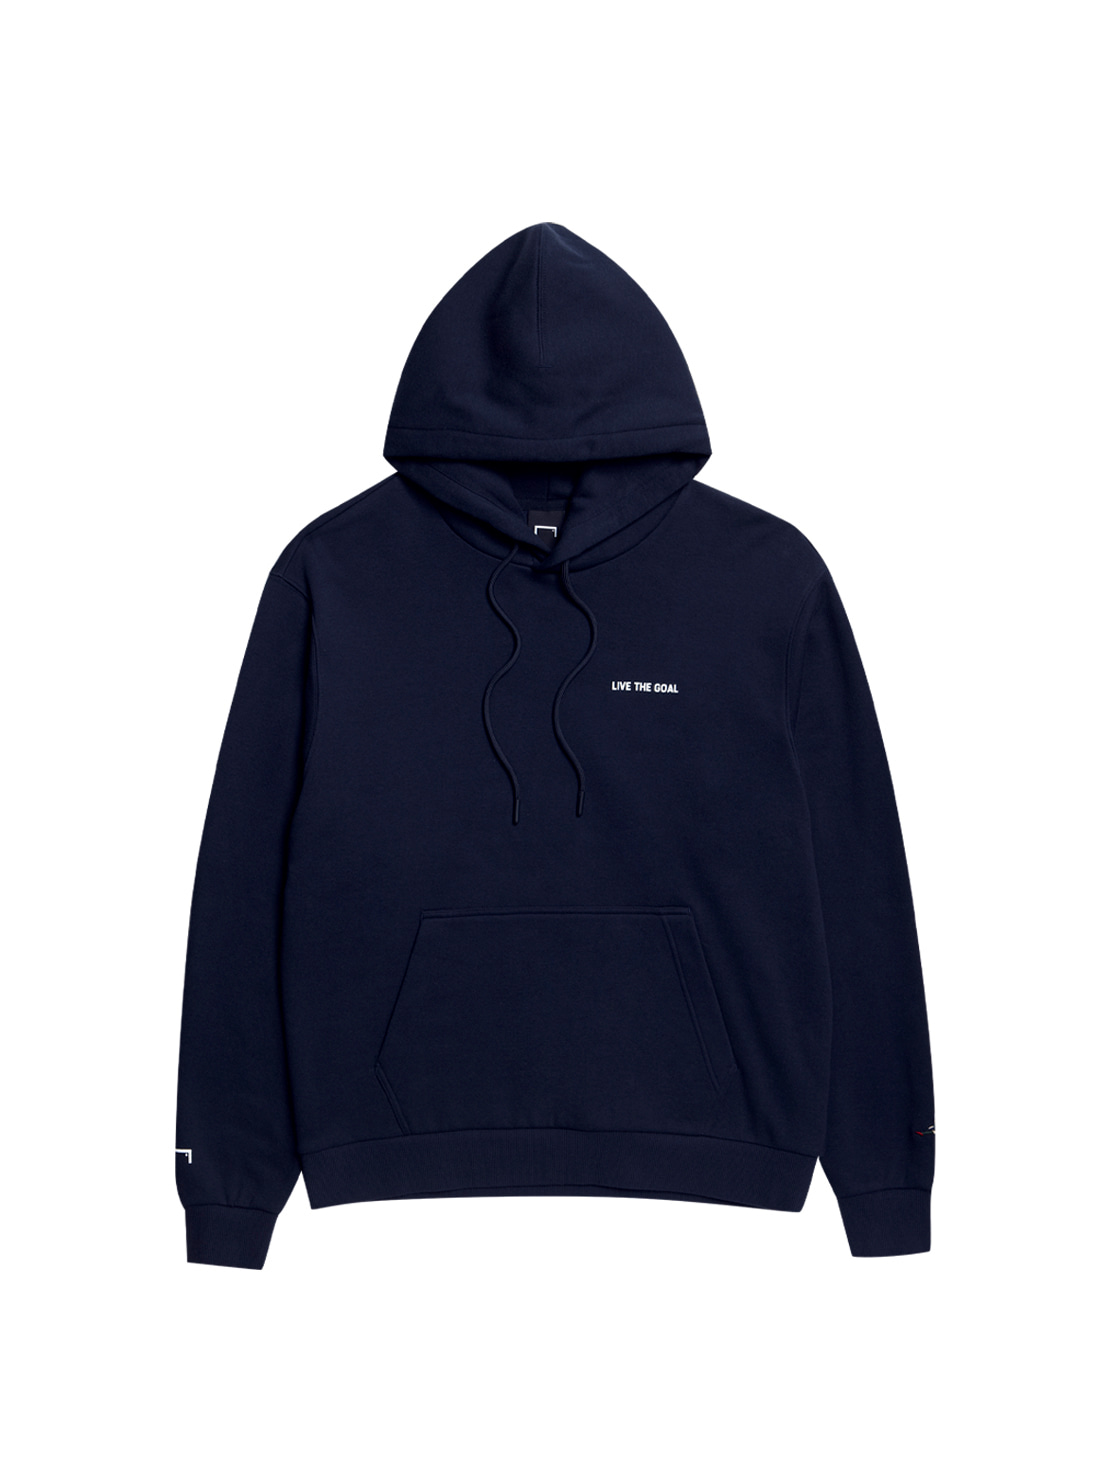 LIVE THE GOAL HOODIE - NAVY